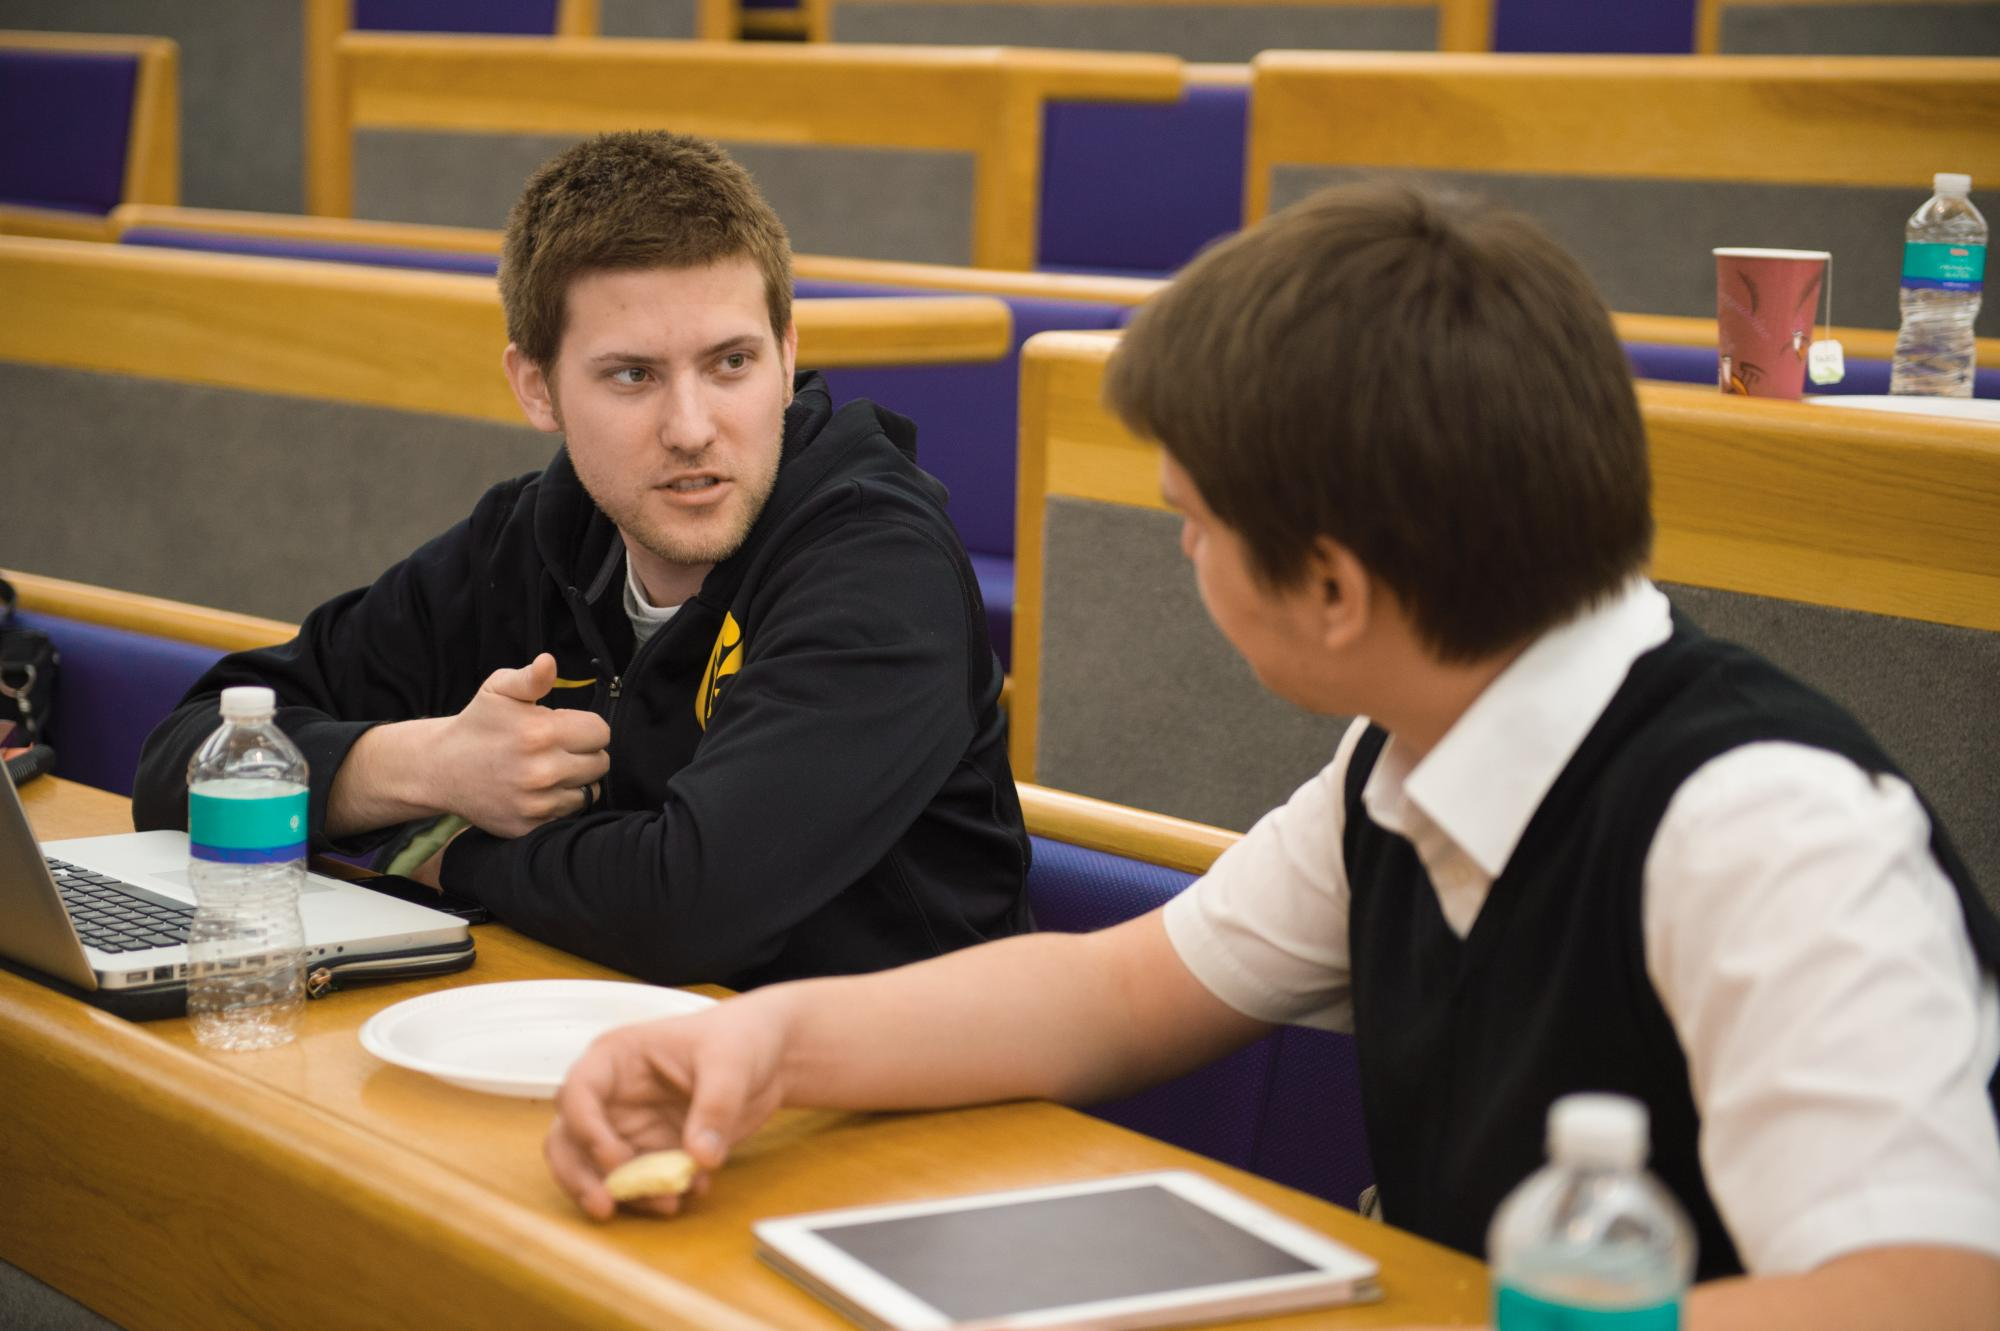 Joint Degree Programs Give Law Students A Head Start